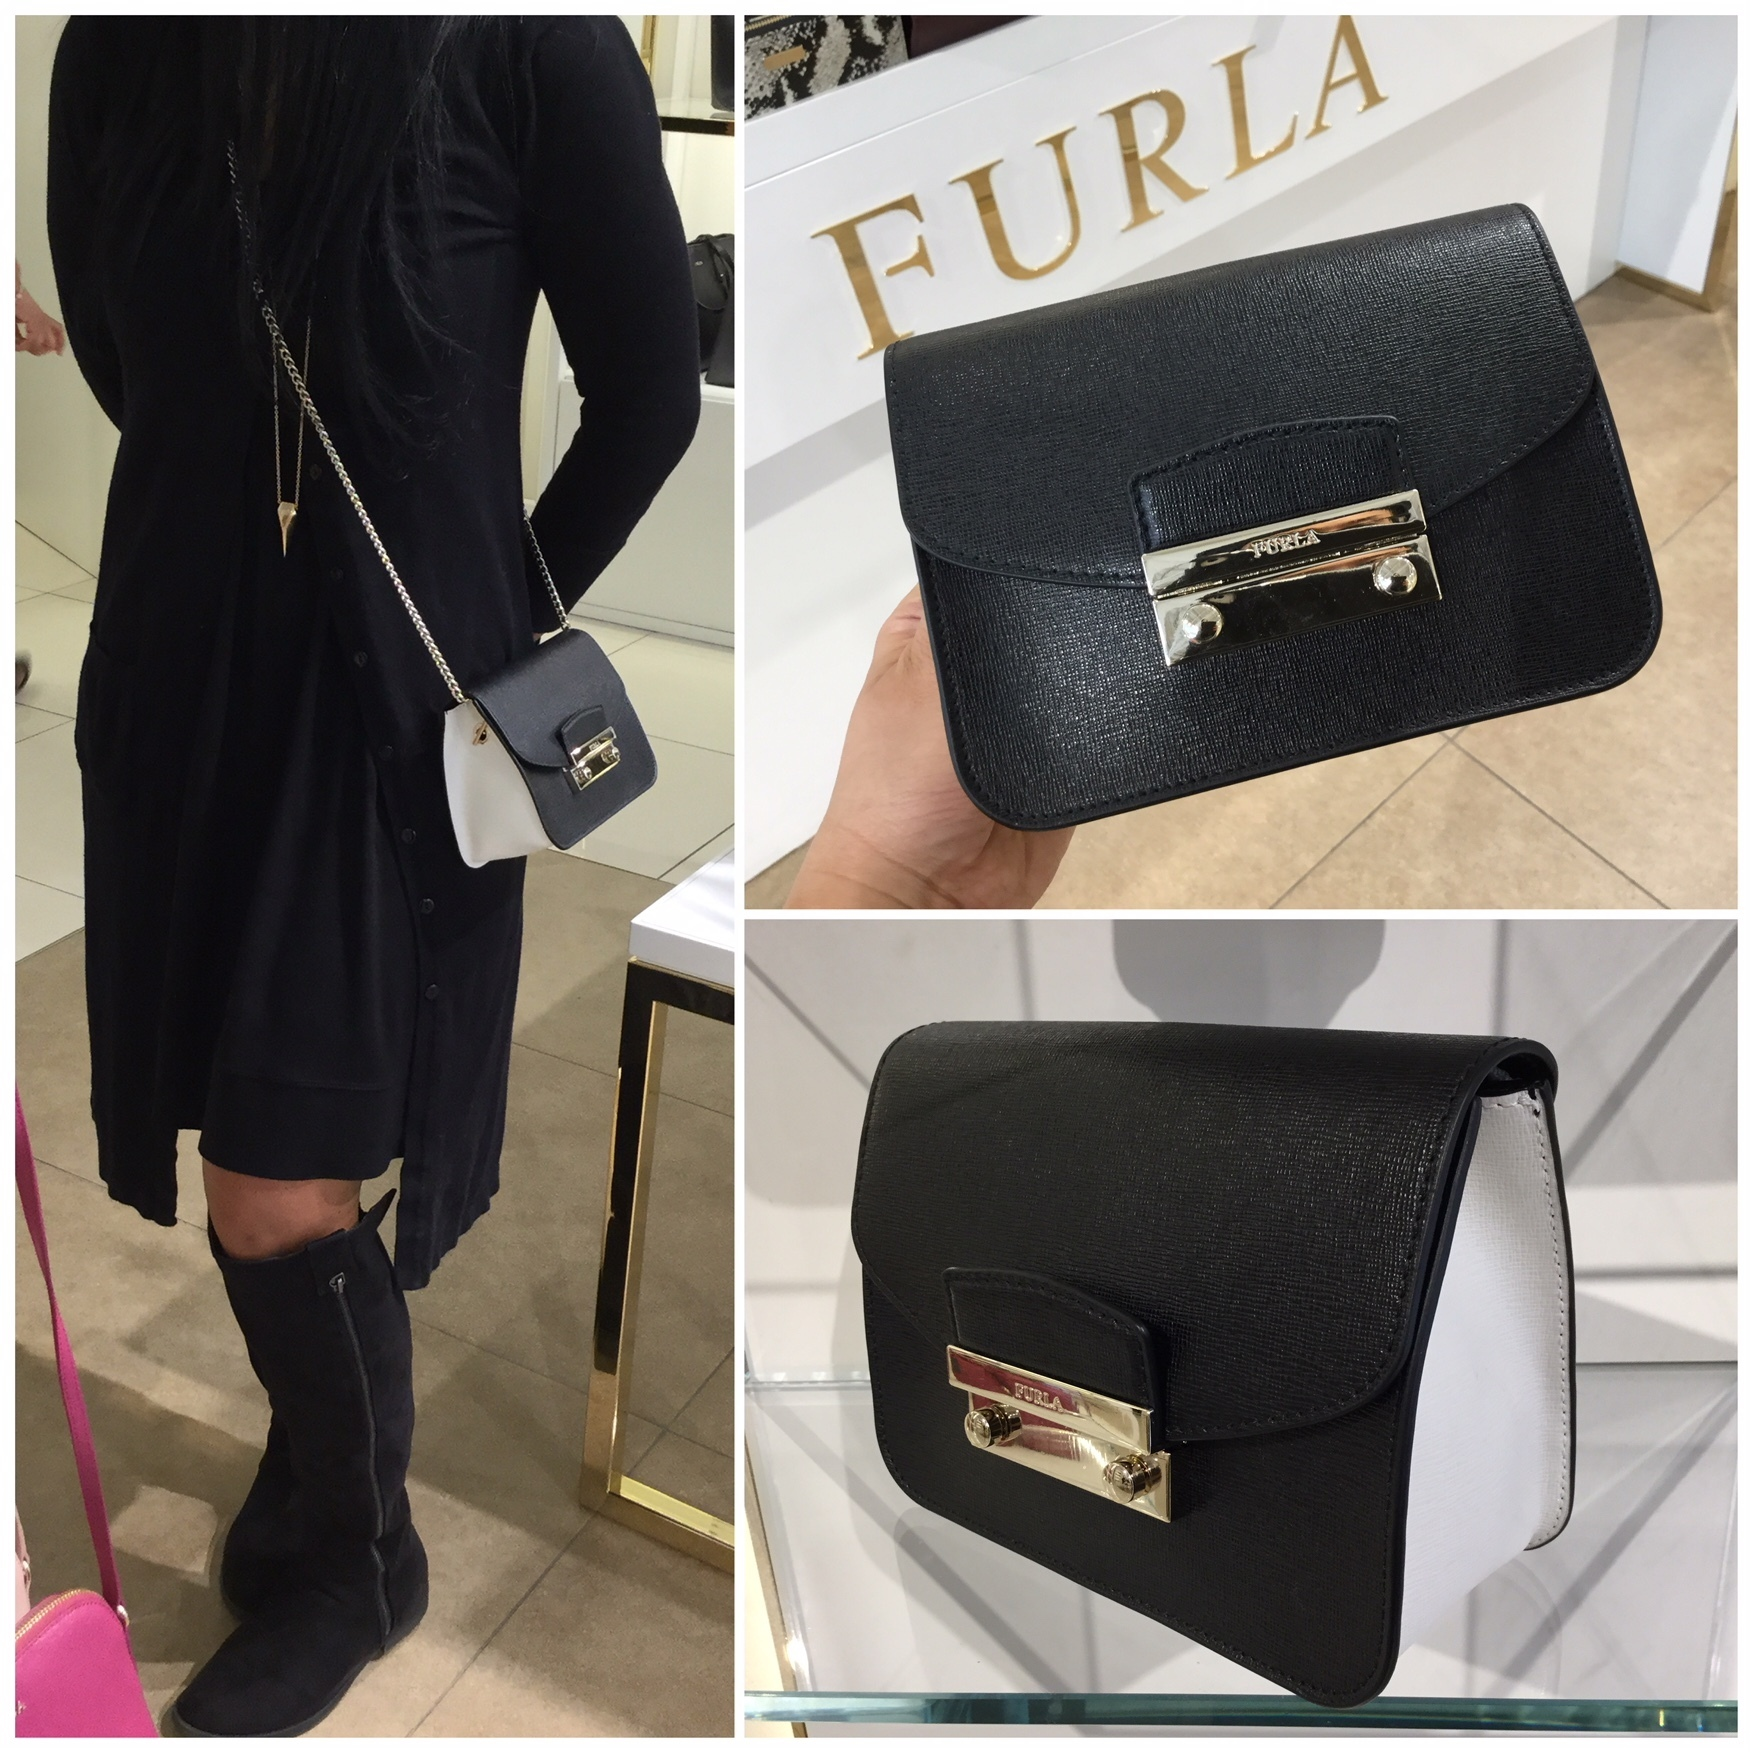 【FURLA】JULIA  Mini Crossbody☆可愛い☆黒×白